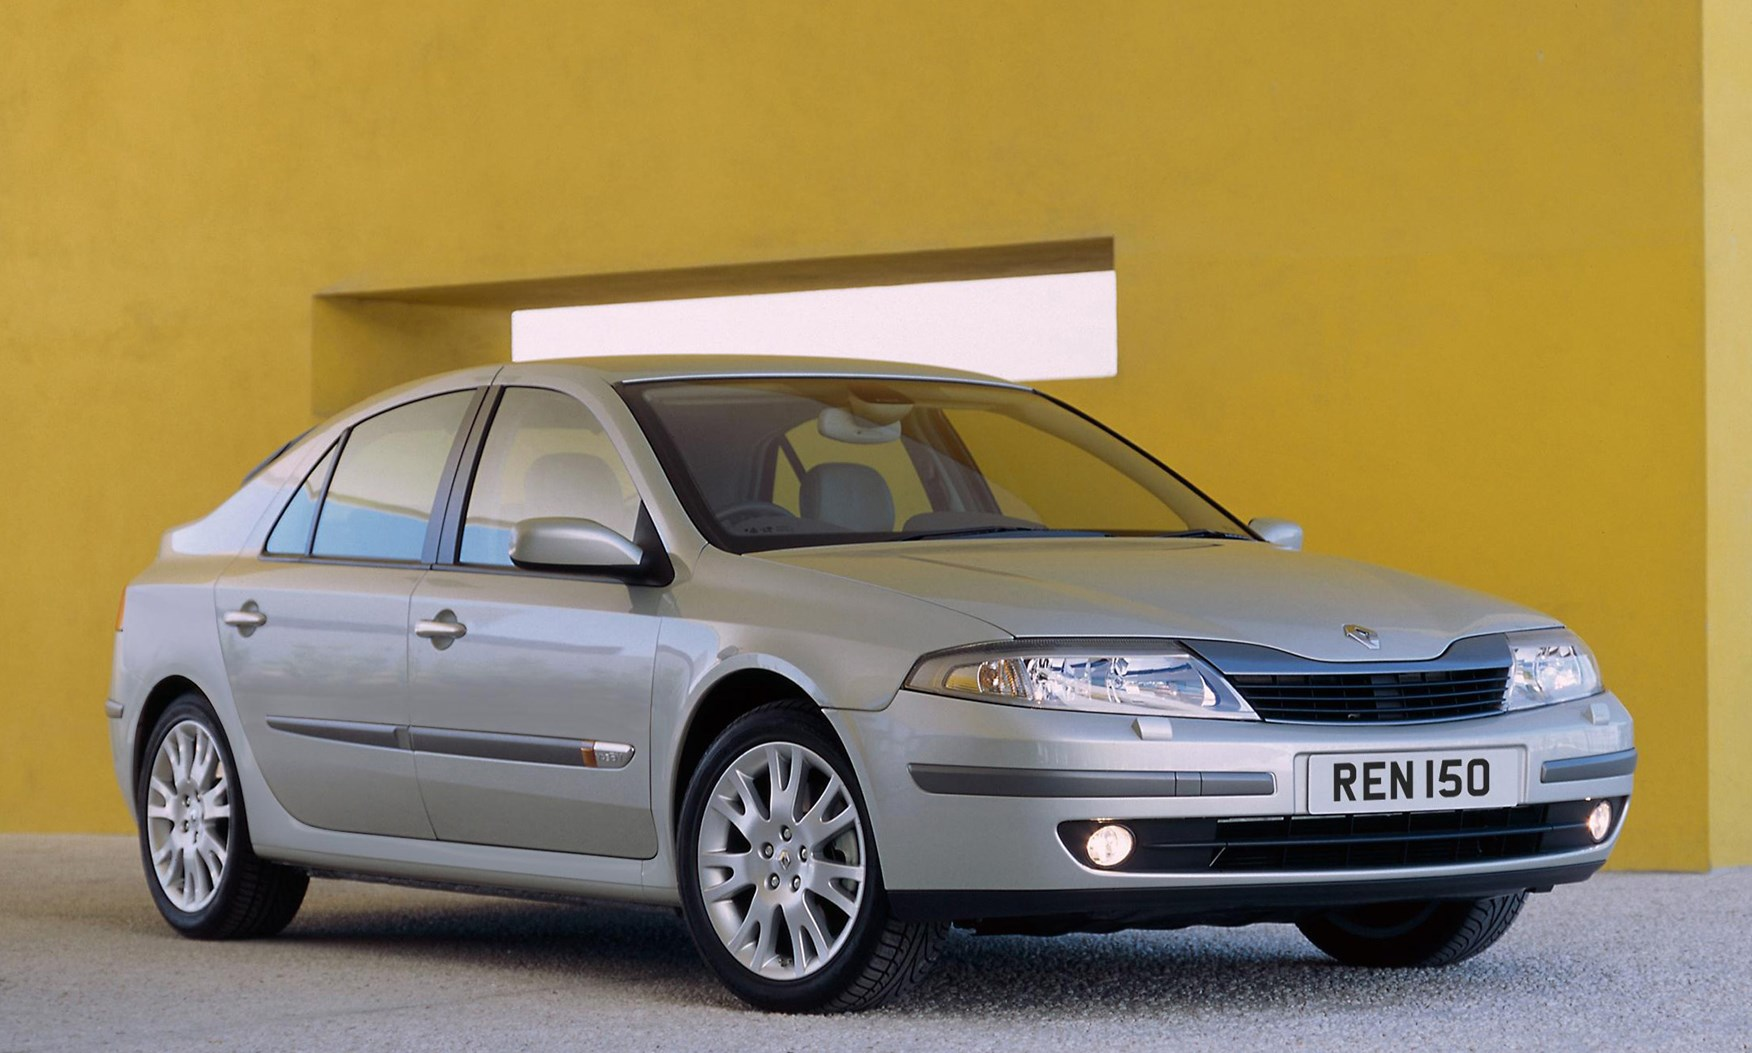 renault laguna hatchback review 2001 2007 parkers. Black Bedroom Furniture Sets. Home Design Ideas